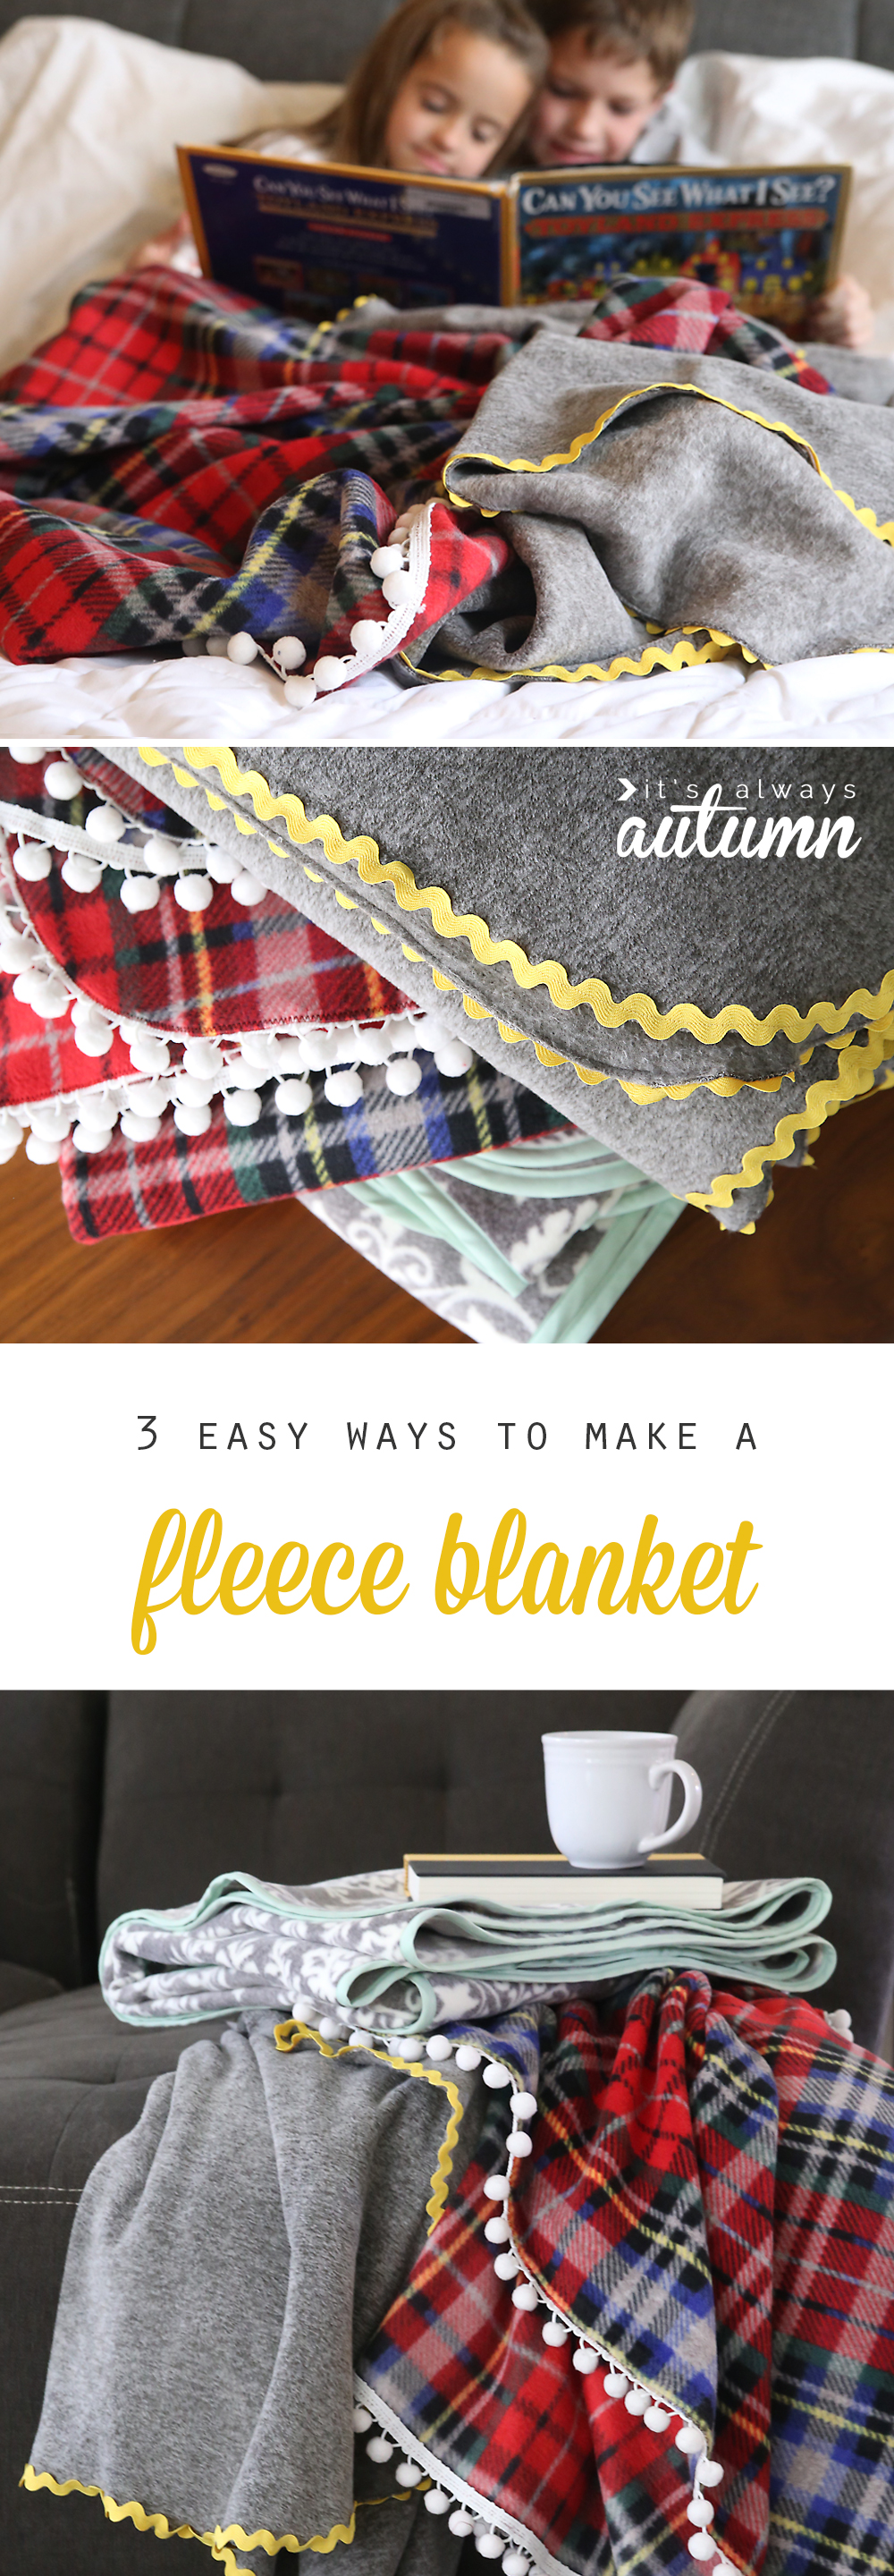 DIY Warm Winter Blankets To Keep Away The Winter Chill